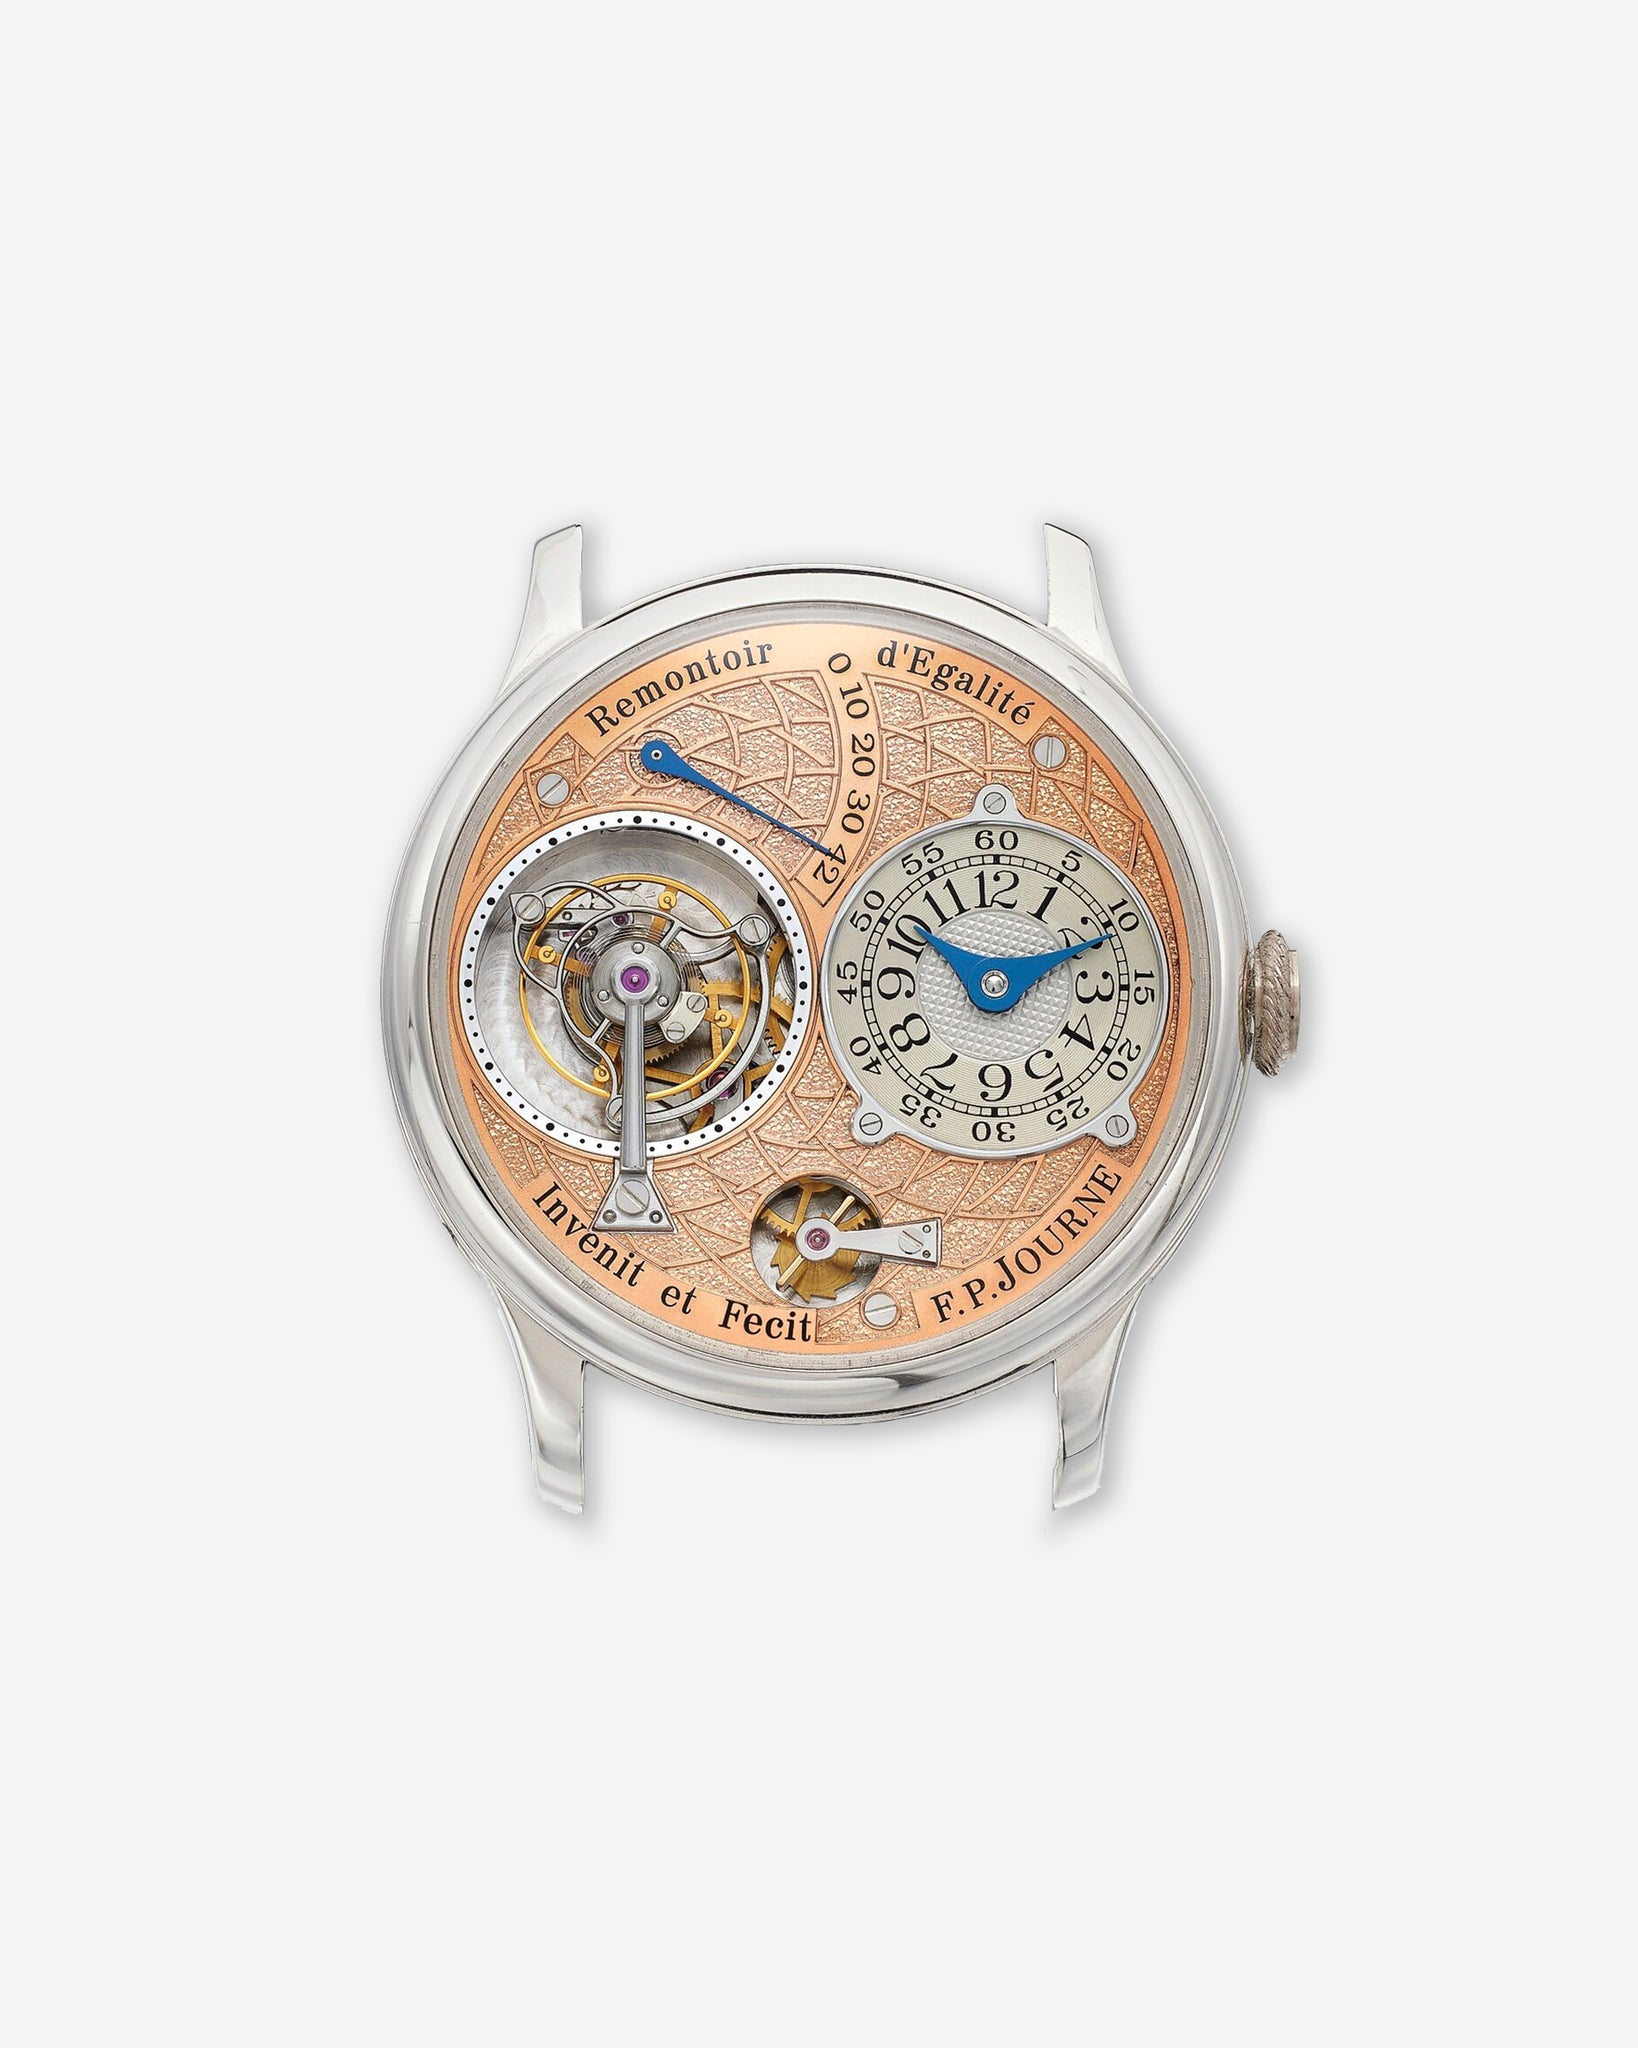 F.P. Journe Tourbillon Souverain with Labyrinth dial engraving